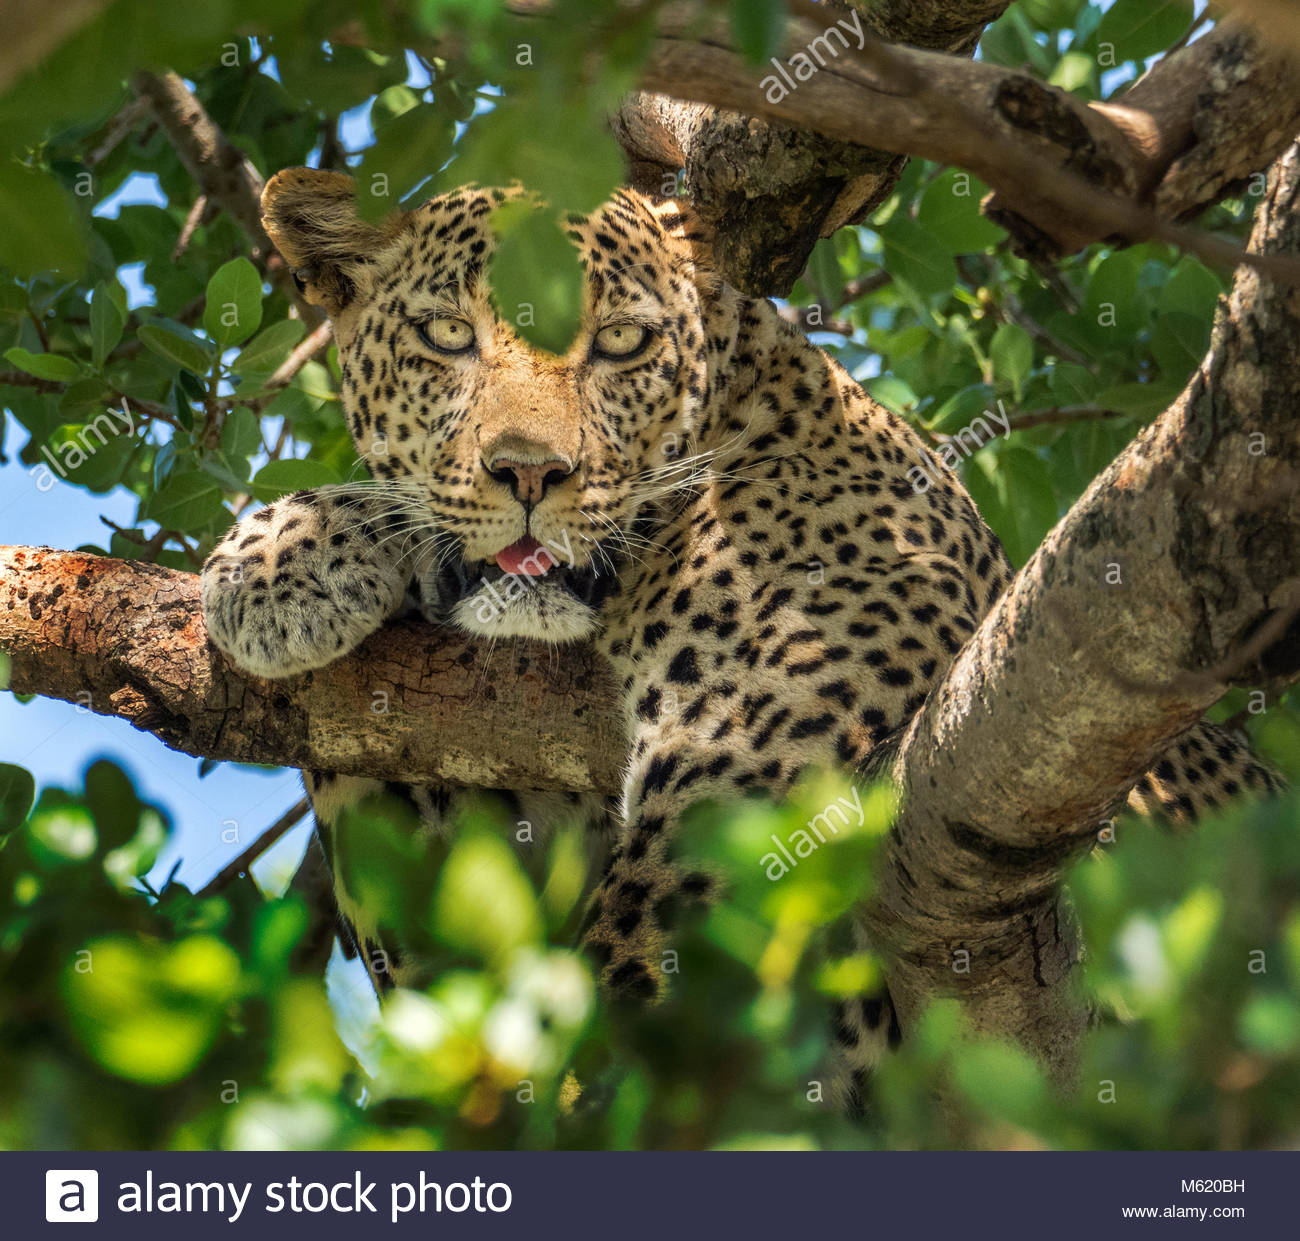 A Leopard, Panthera Pardus, rests in a tree. - Stock Image